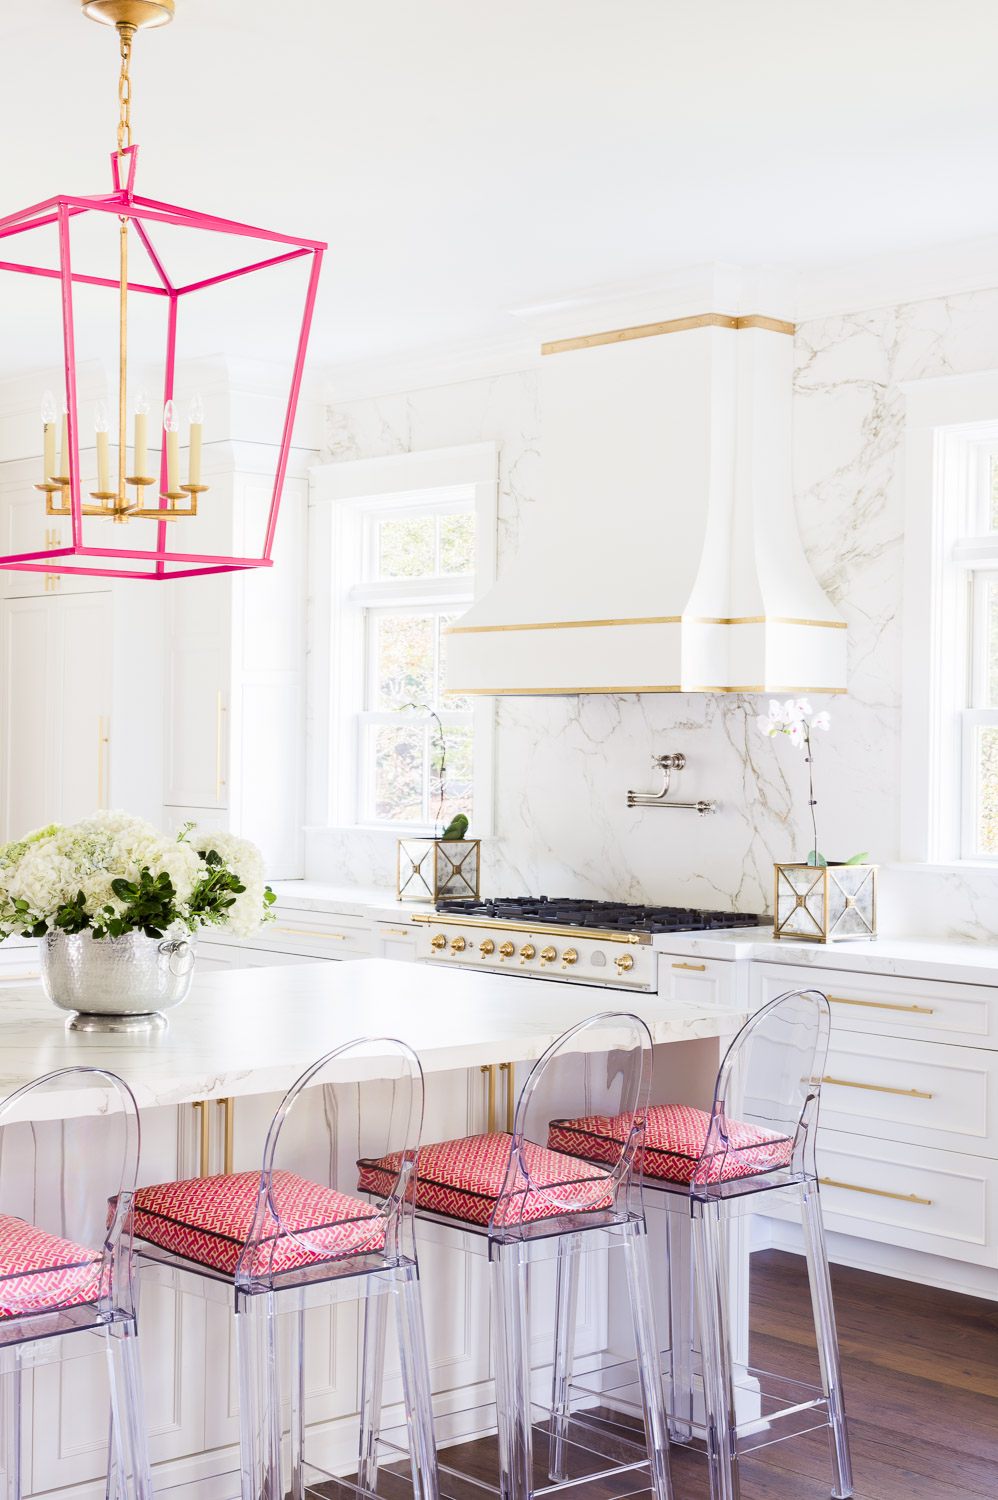 Laura Burleson Designs the <em>Perfect</em> White & Gold Kitchen!